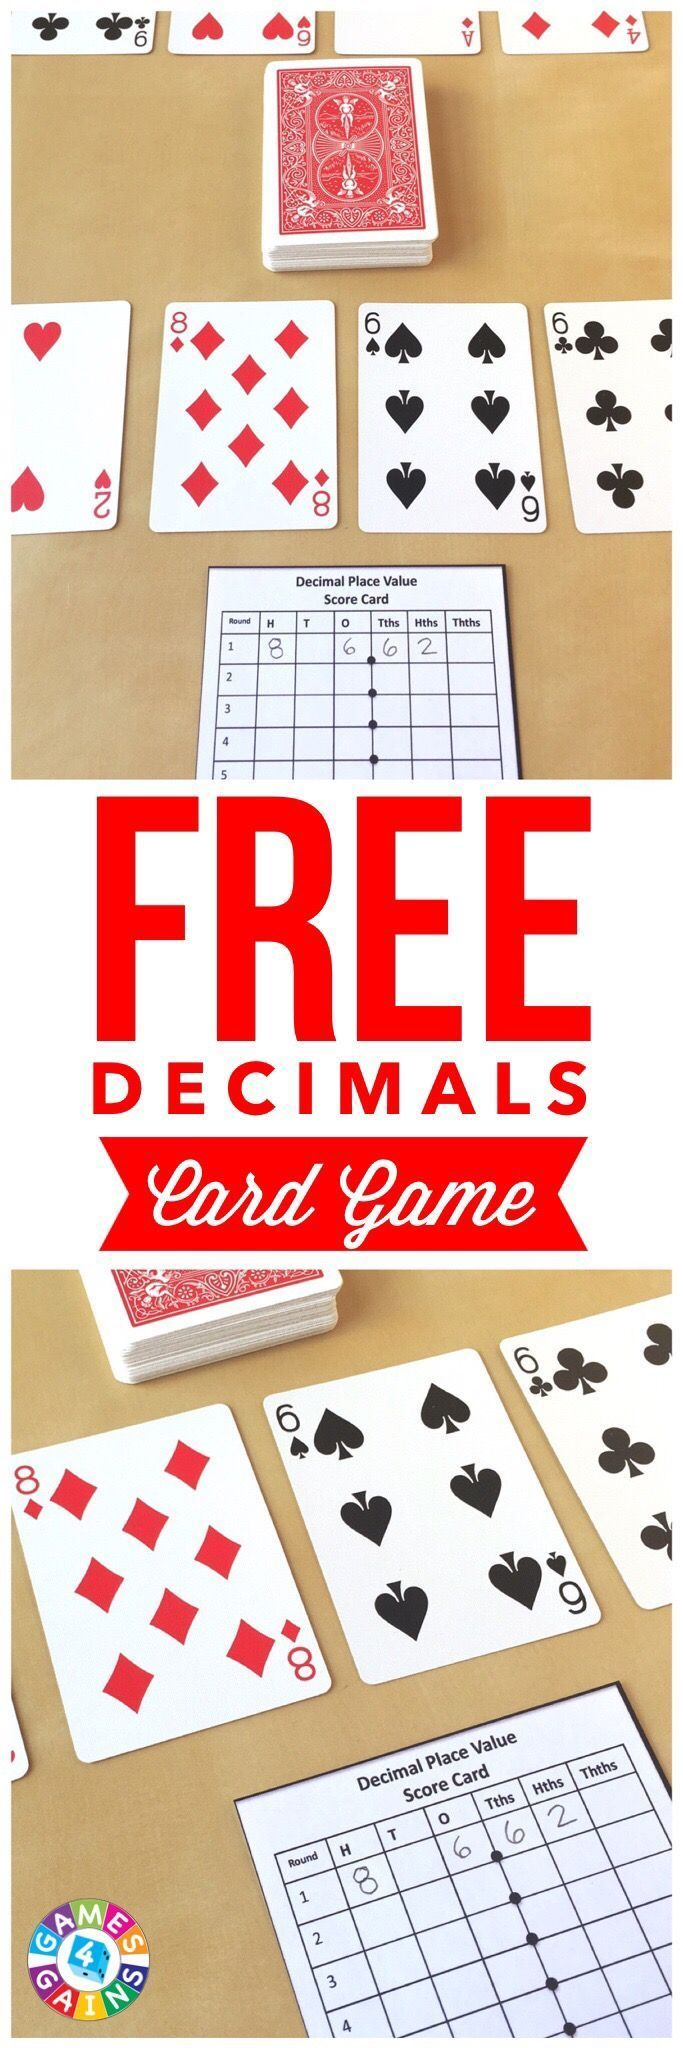 My students love this fun and easy-to-prep decimals card game!  Works great for practicing decimal place value!